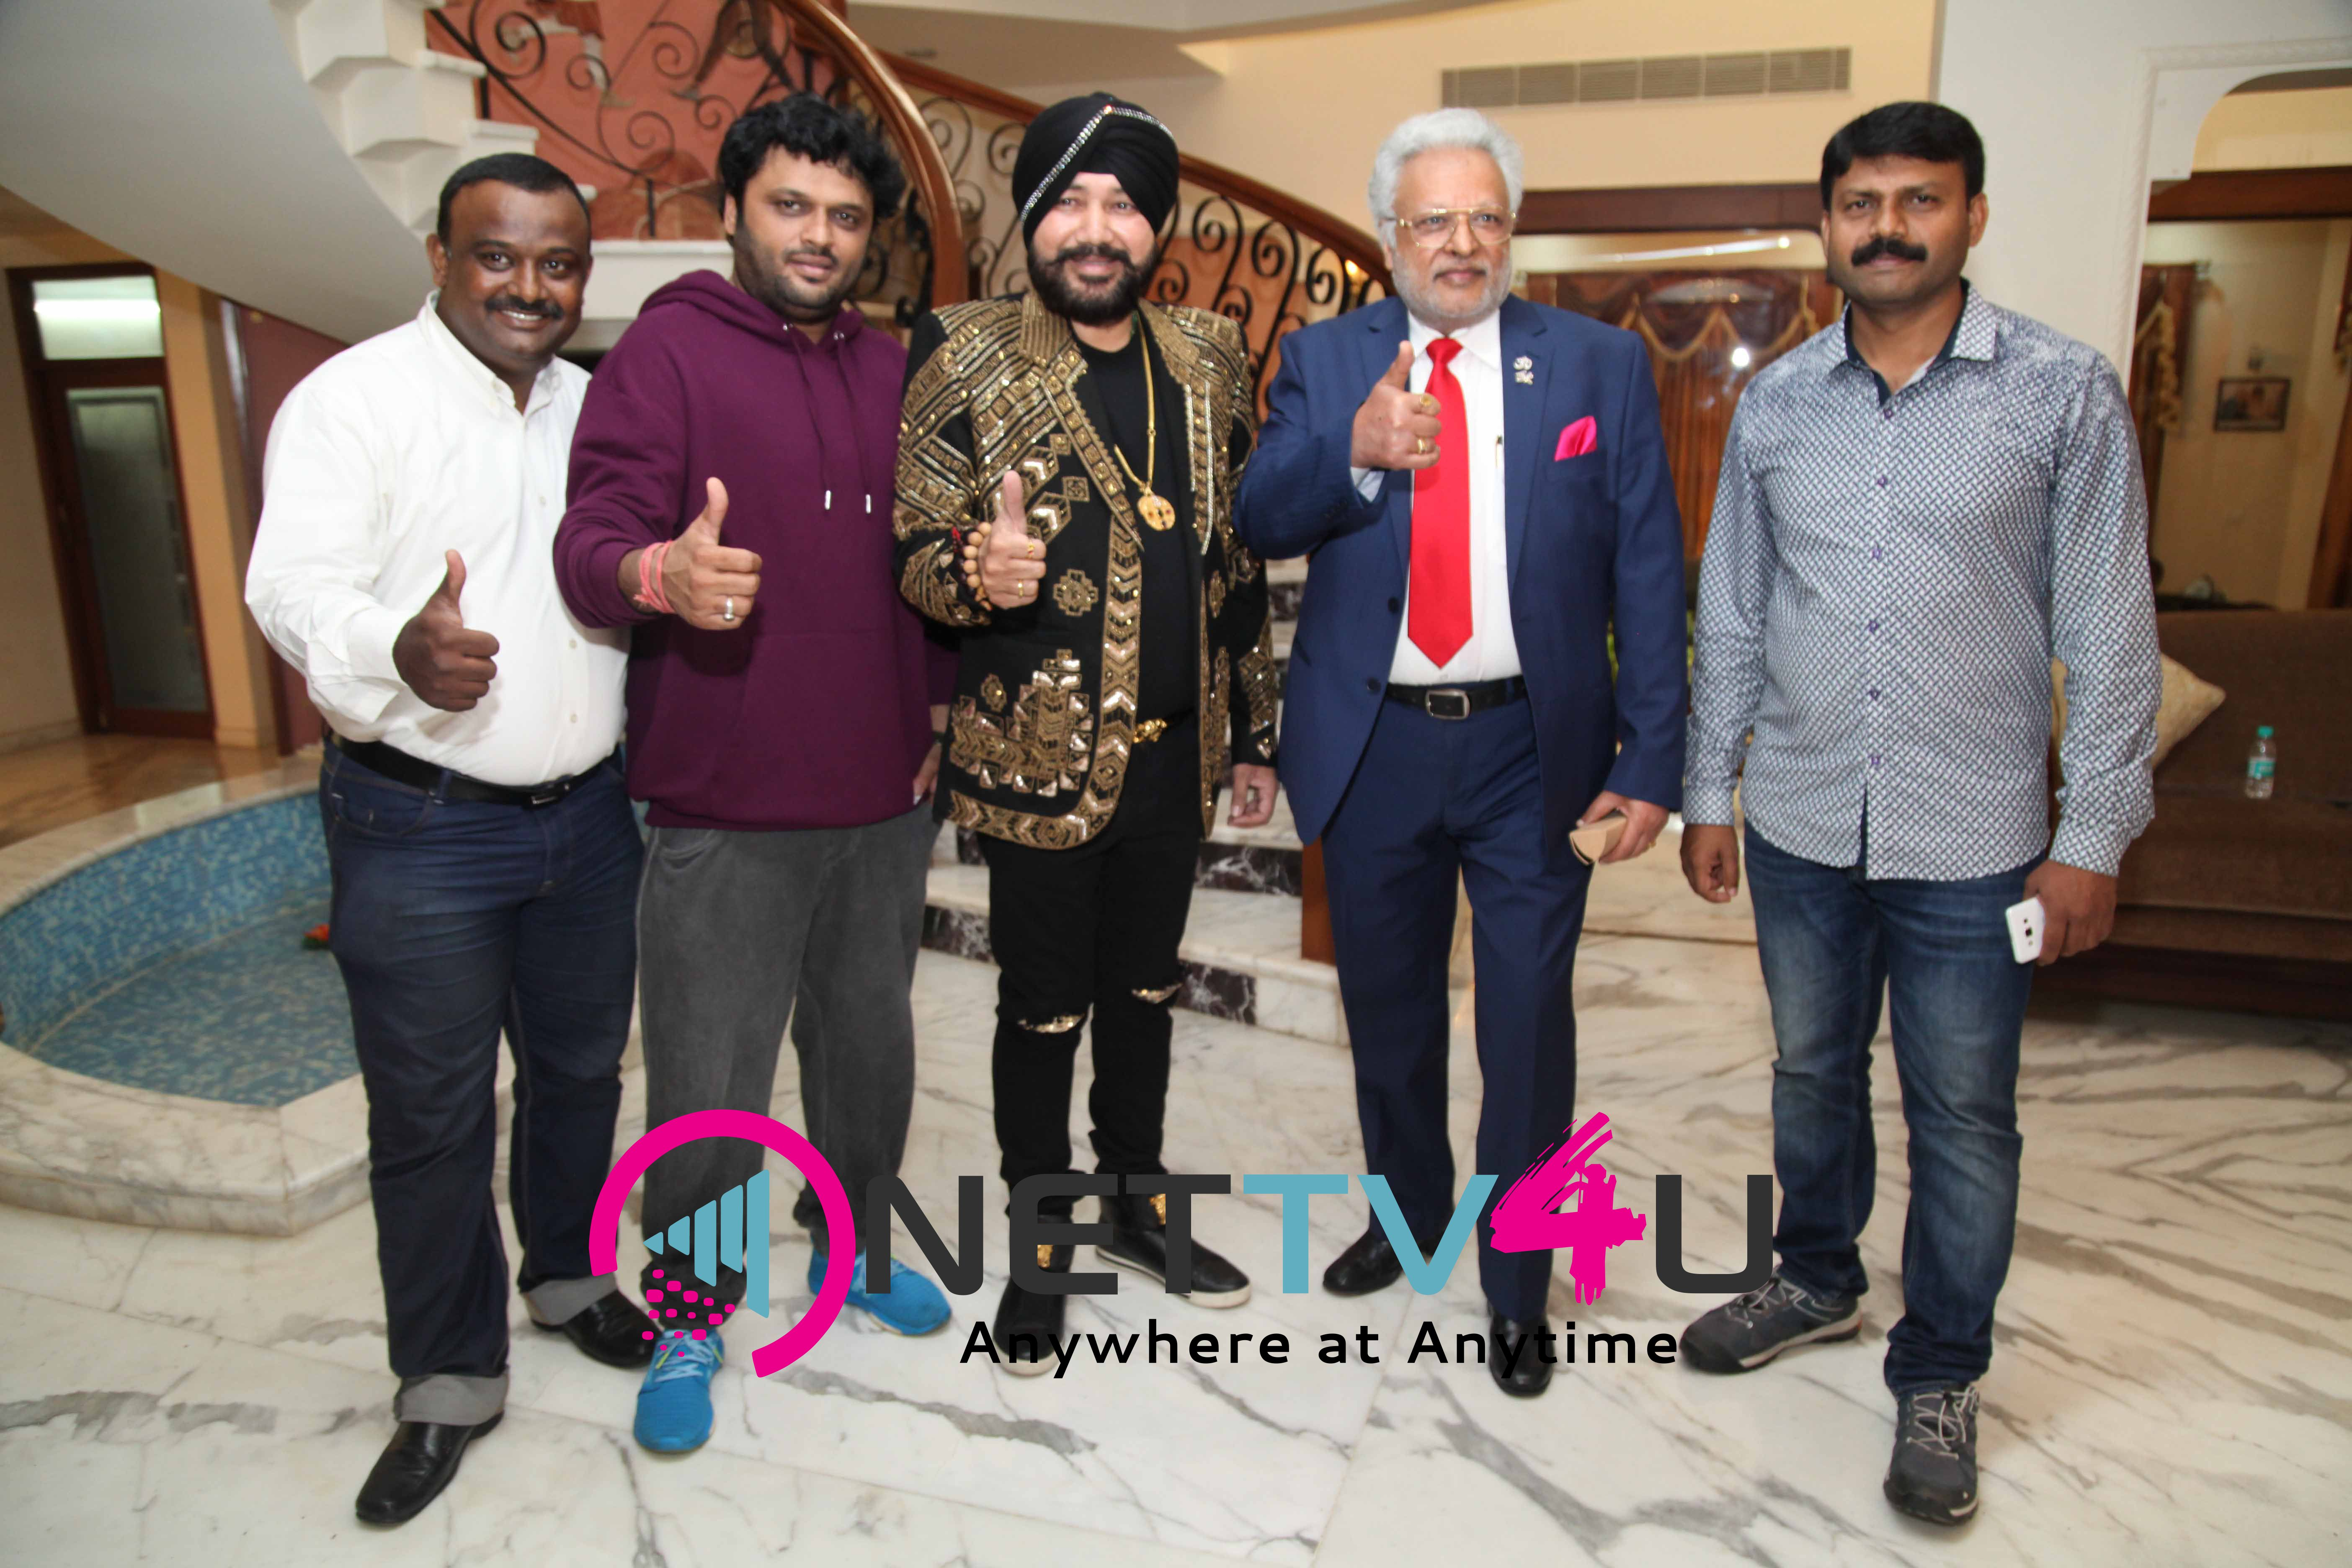 Singer Daler Mehndi - Shalabh Kumar Joined To Produce Kannada Film Check Pressmeet Stills